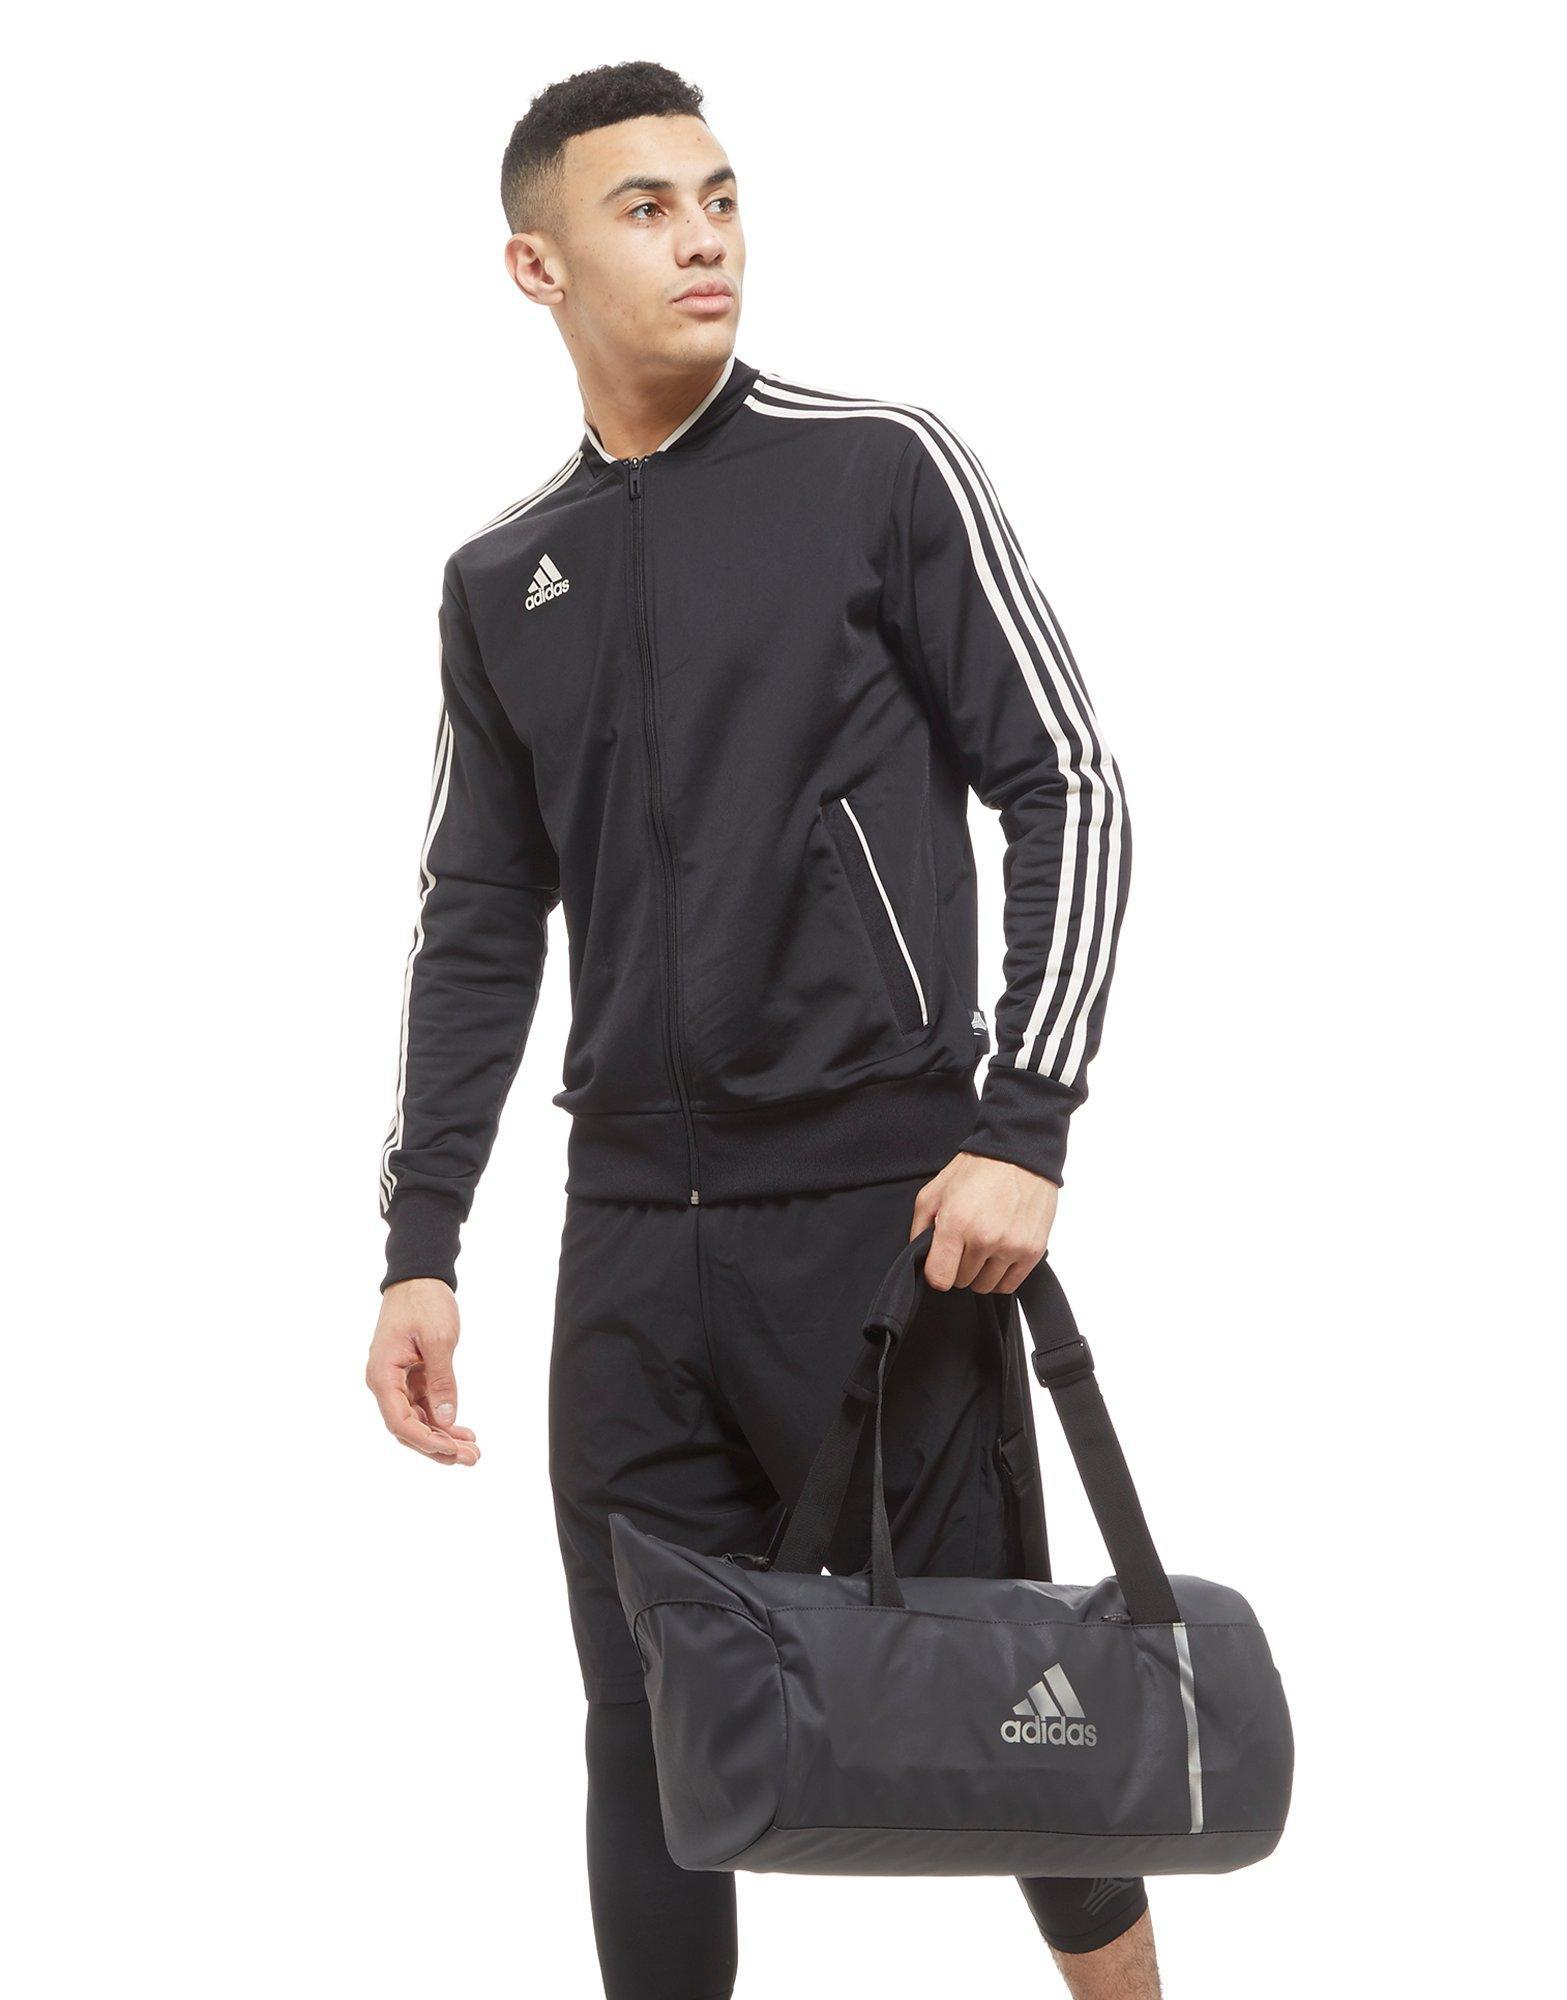 Lyst - adidas Convertible Training Duffle Bag Small in Gray for Men fa3496e026f32